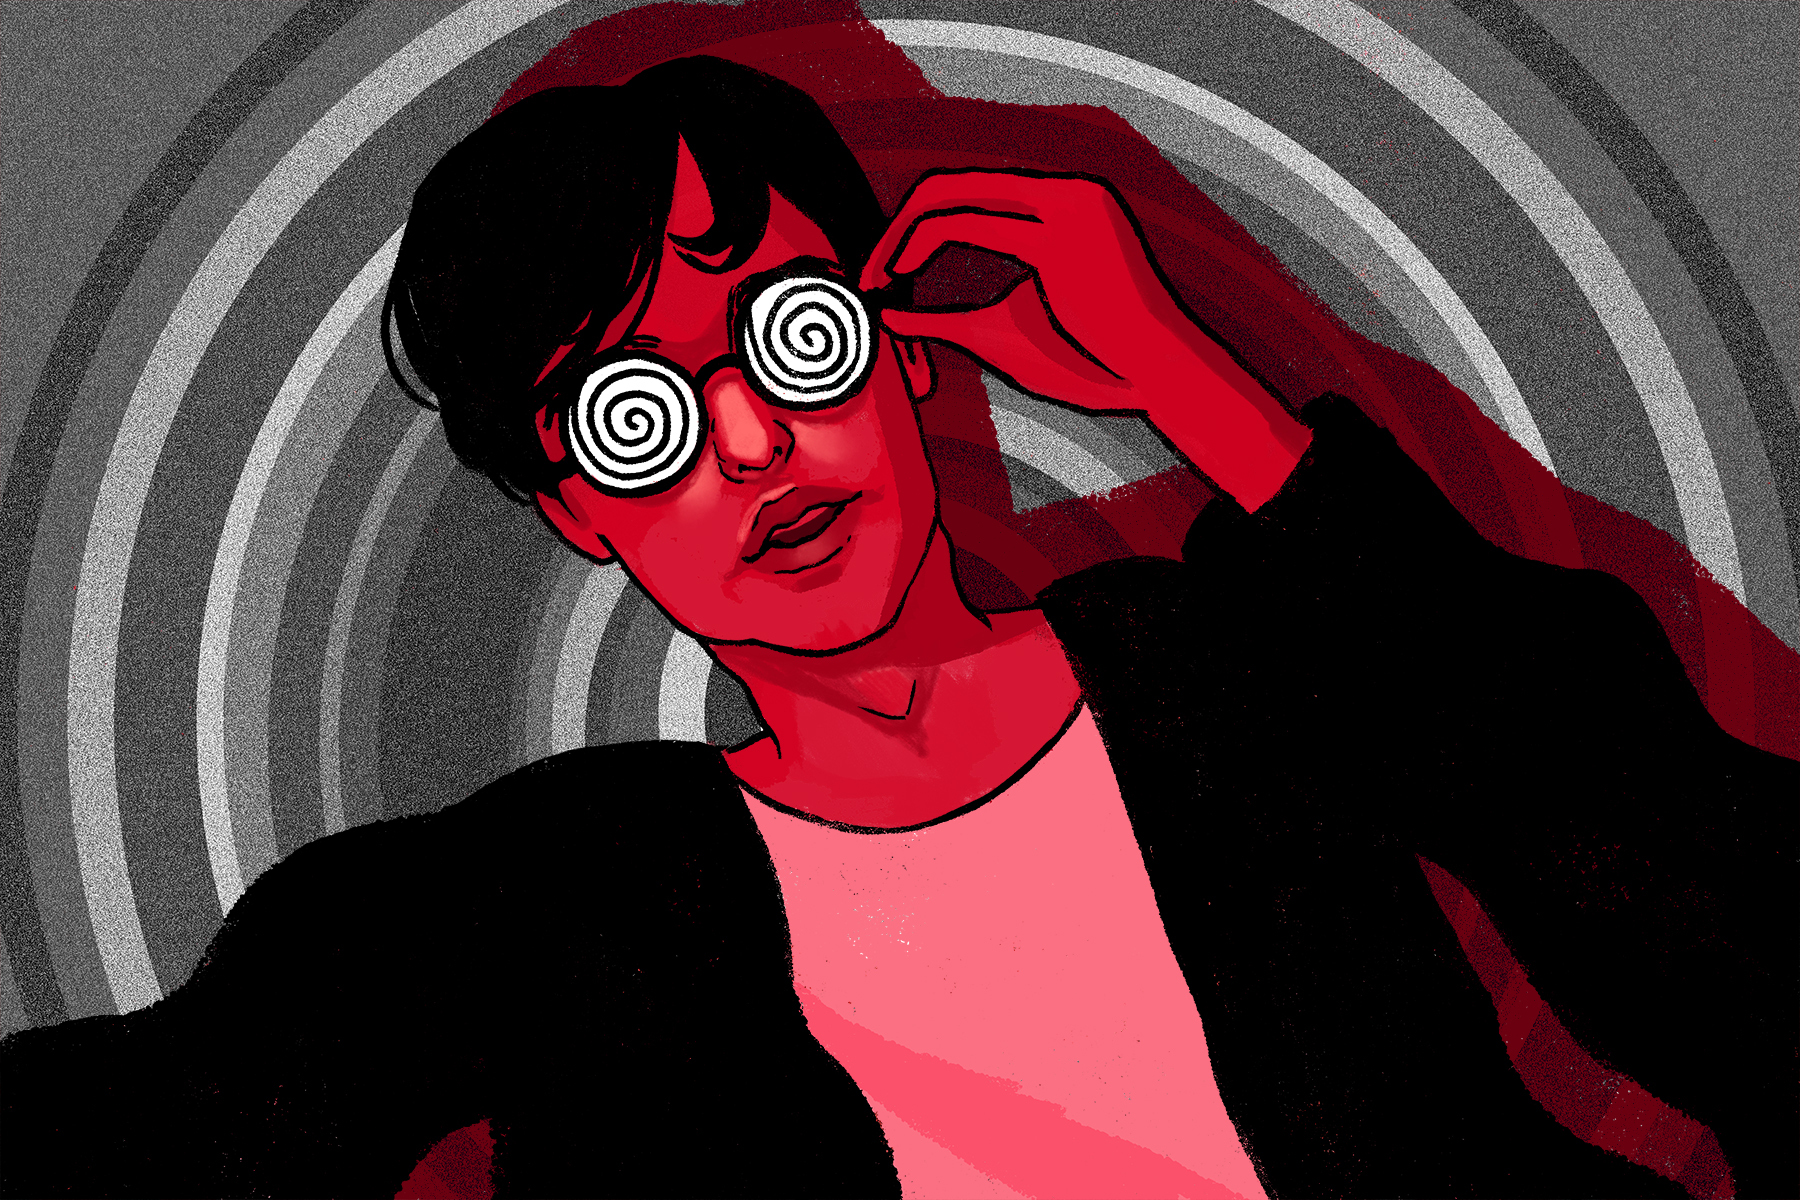 In an article about Joji's album 'Nectar.' An illustration of Joji by Marlowe Pody.